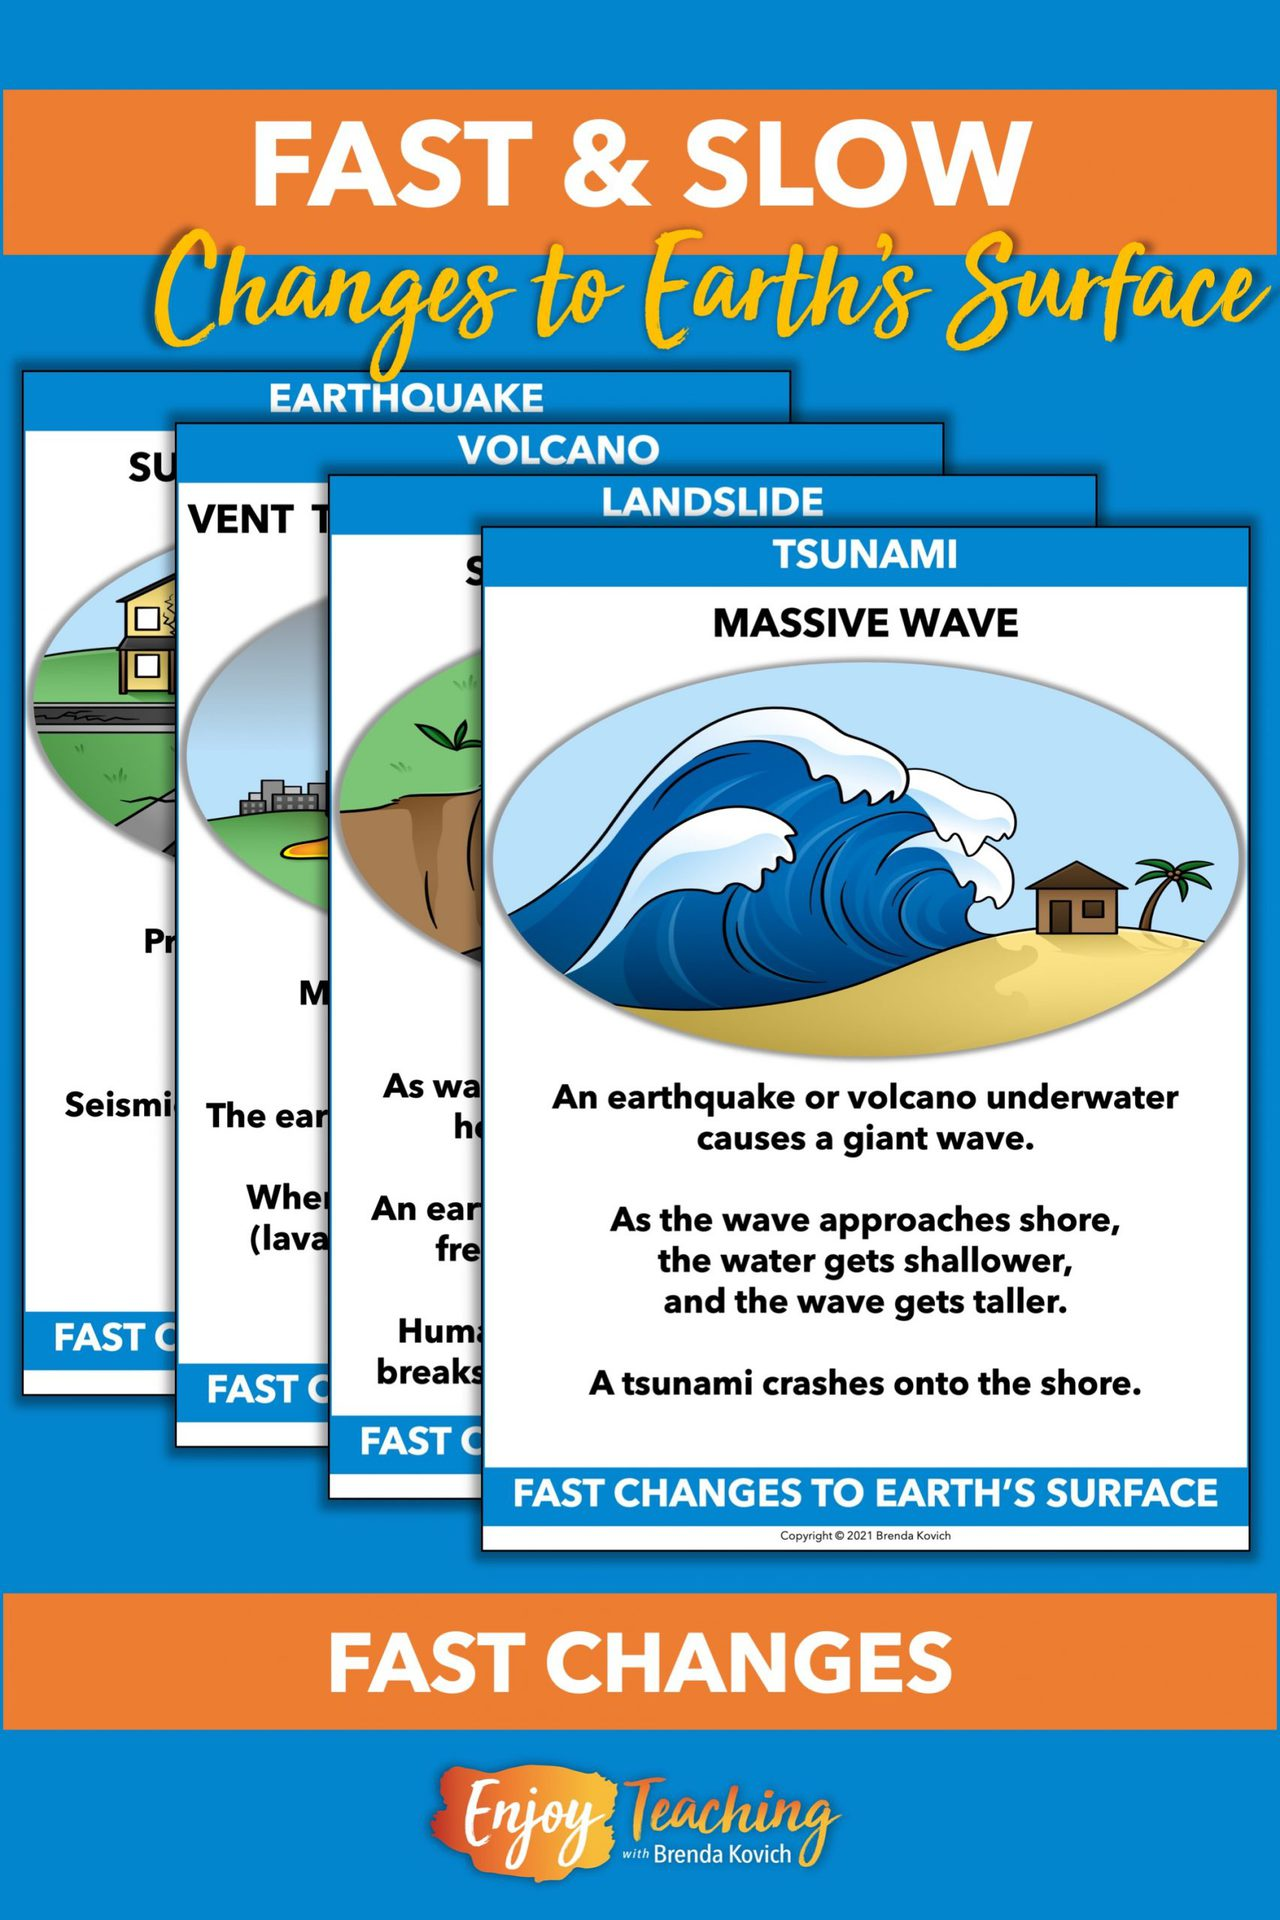 Four posters help teach fast and slow changes to Earth's surface - earthquakes, volcanoes, landslides, and tsunamis.